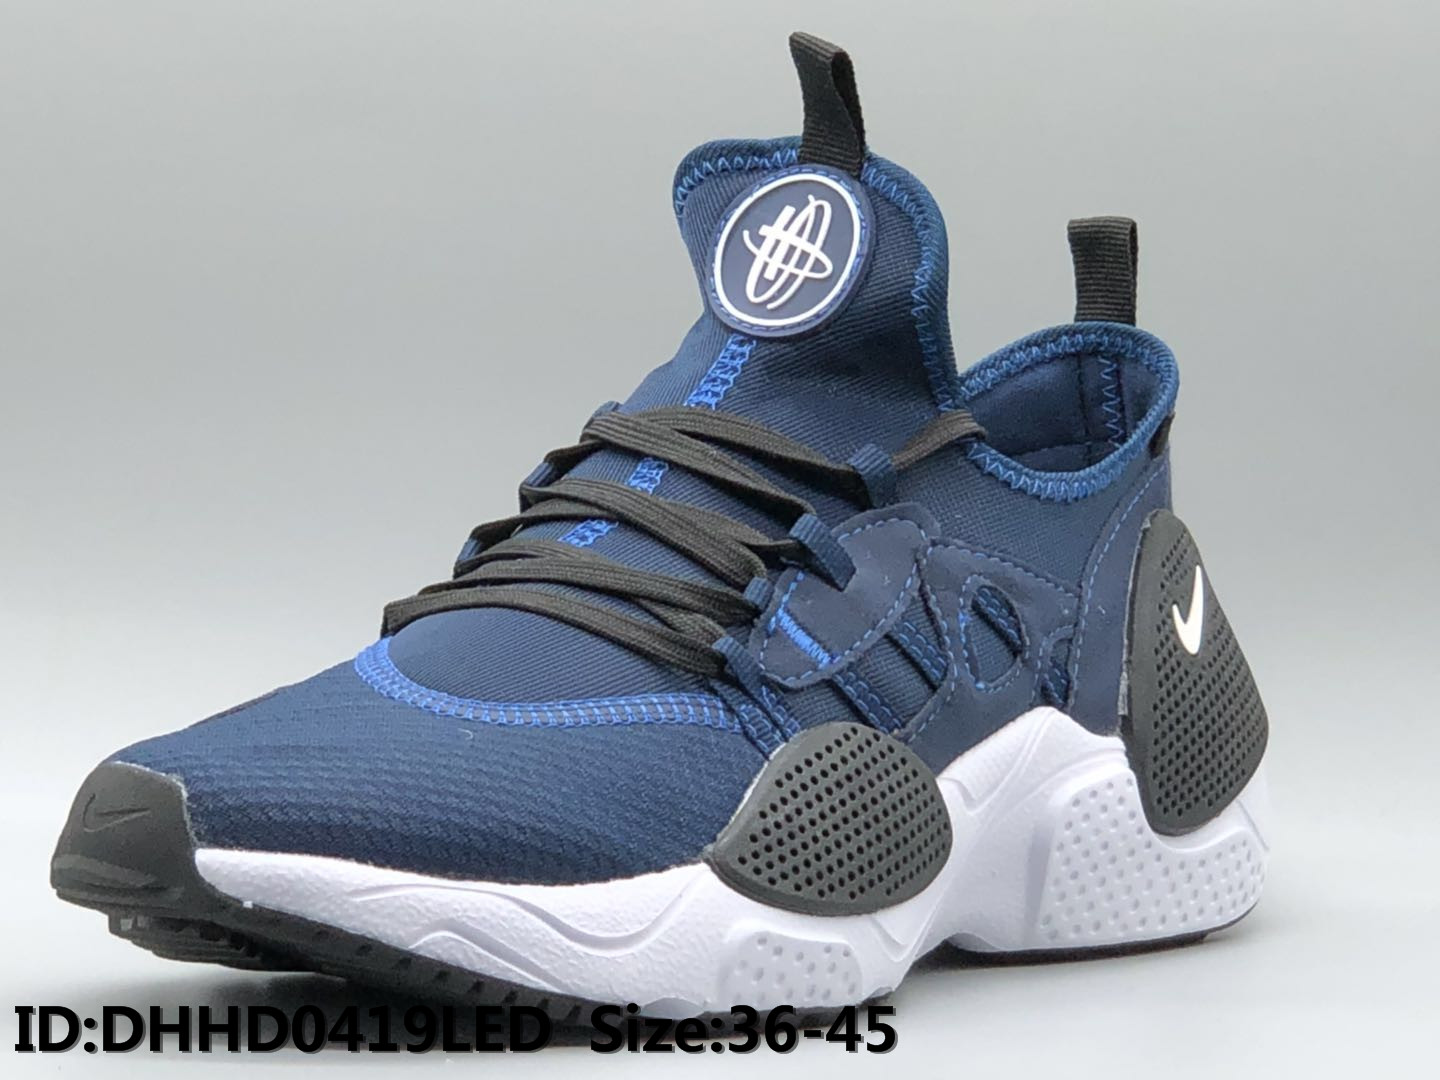 Nike Air Huarache 7 Blue Black White Shoes